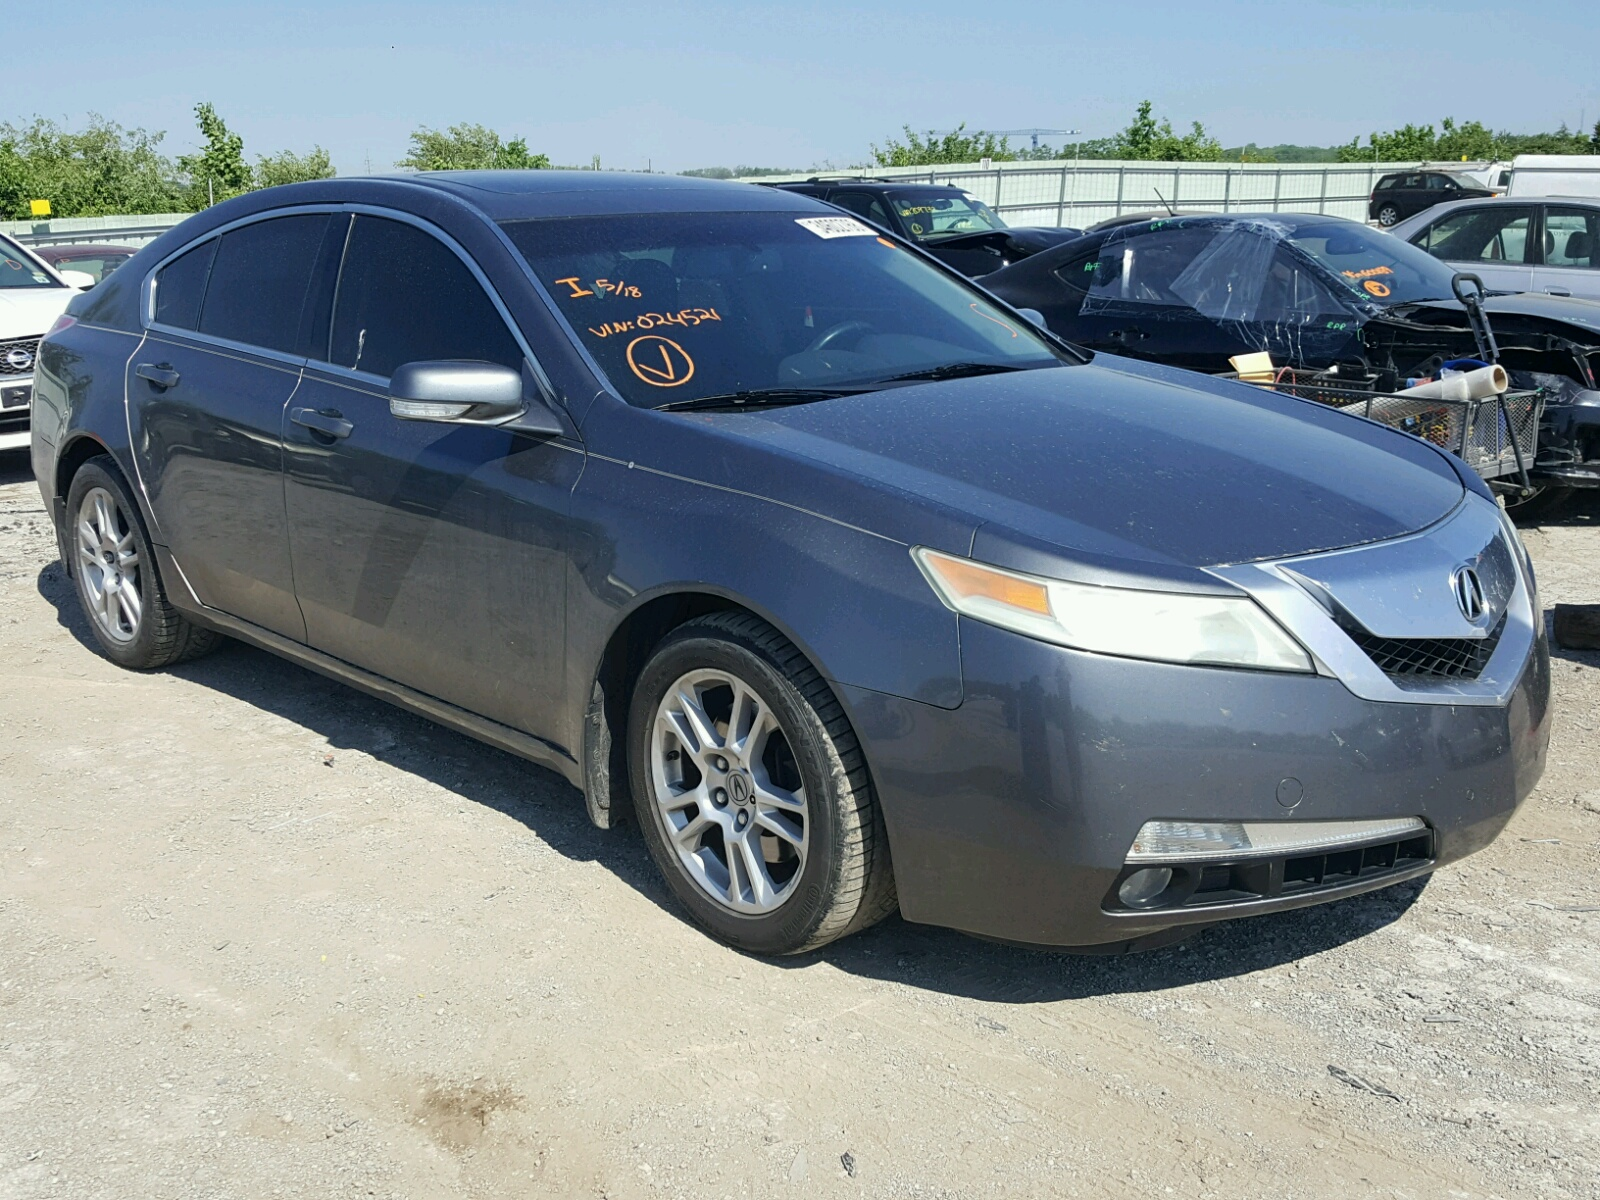 2009 Acura TL for sale at Copart Kansas City KS Lot